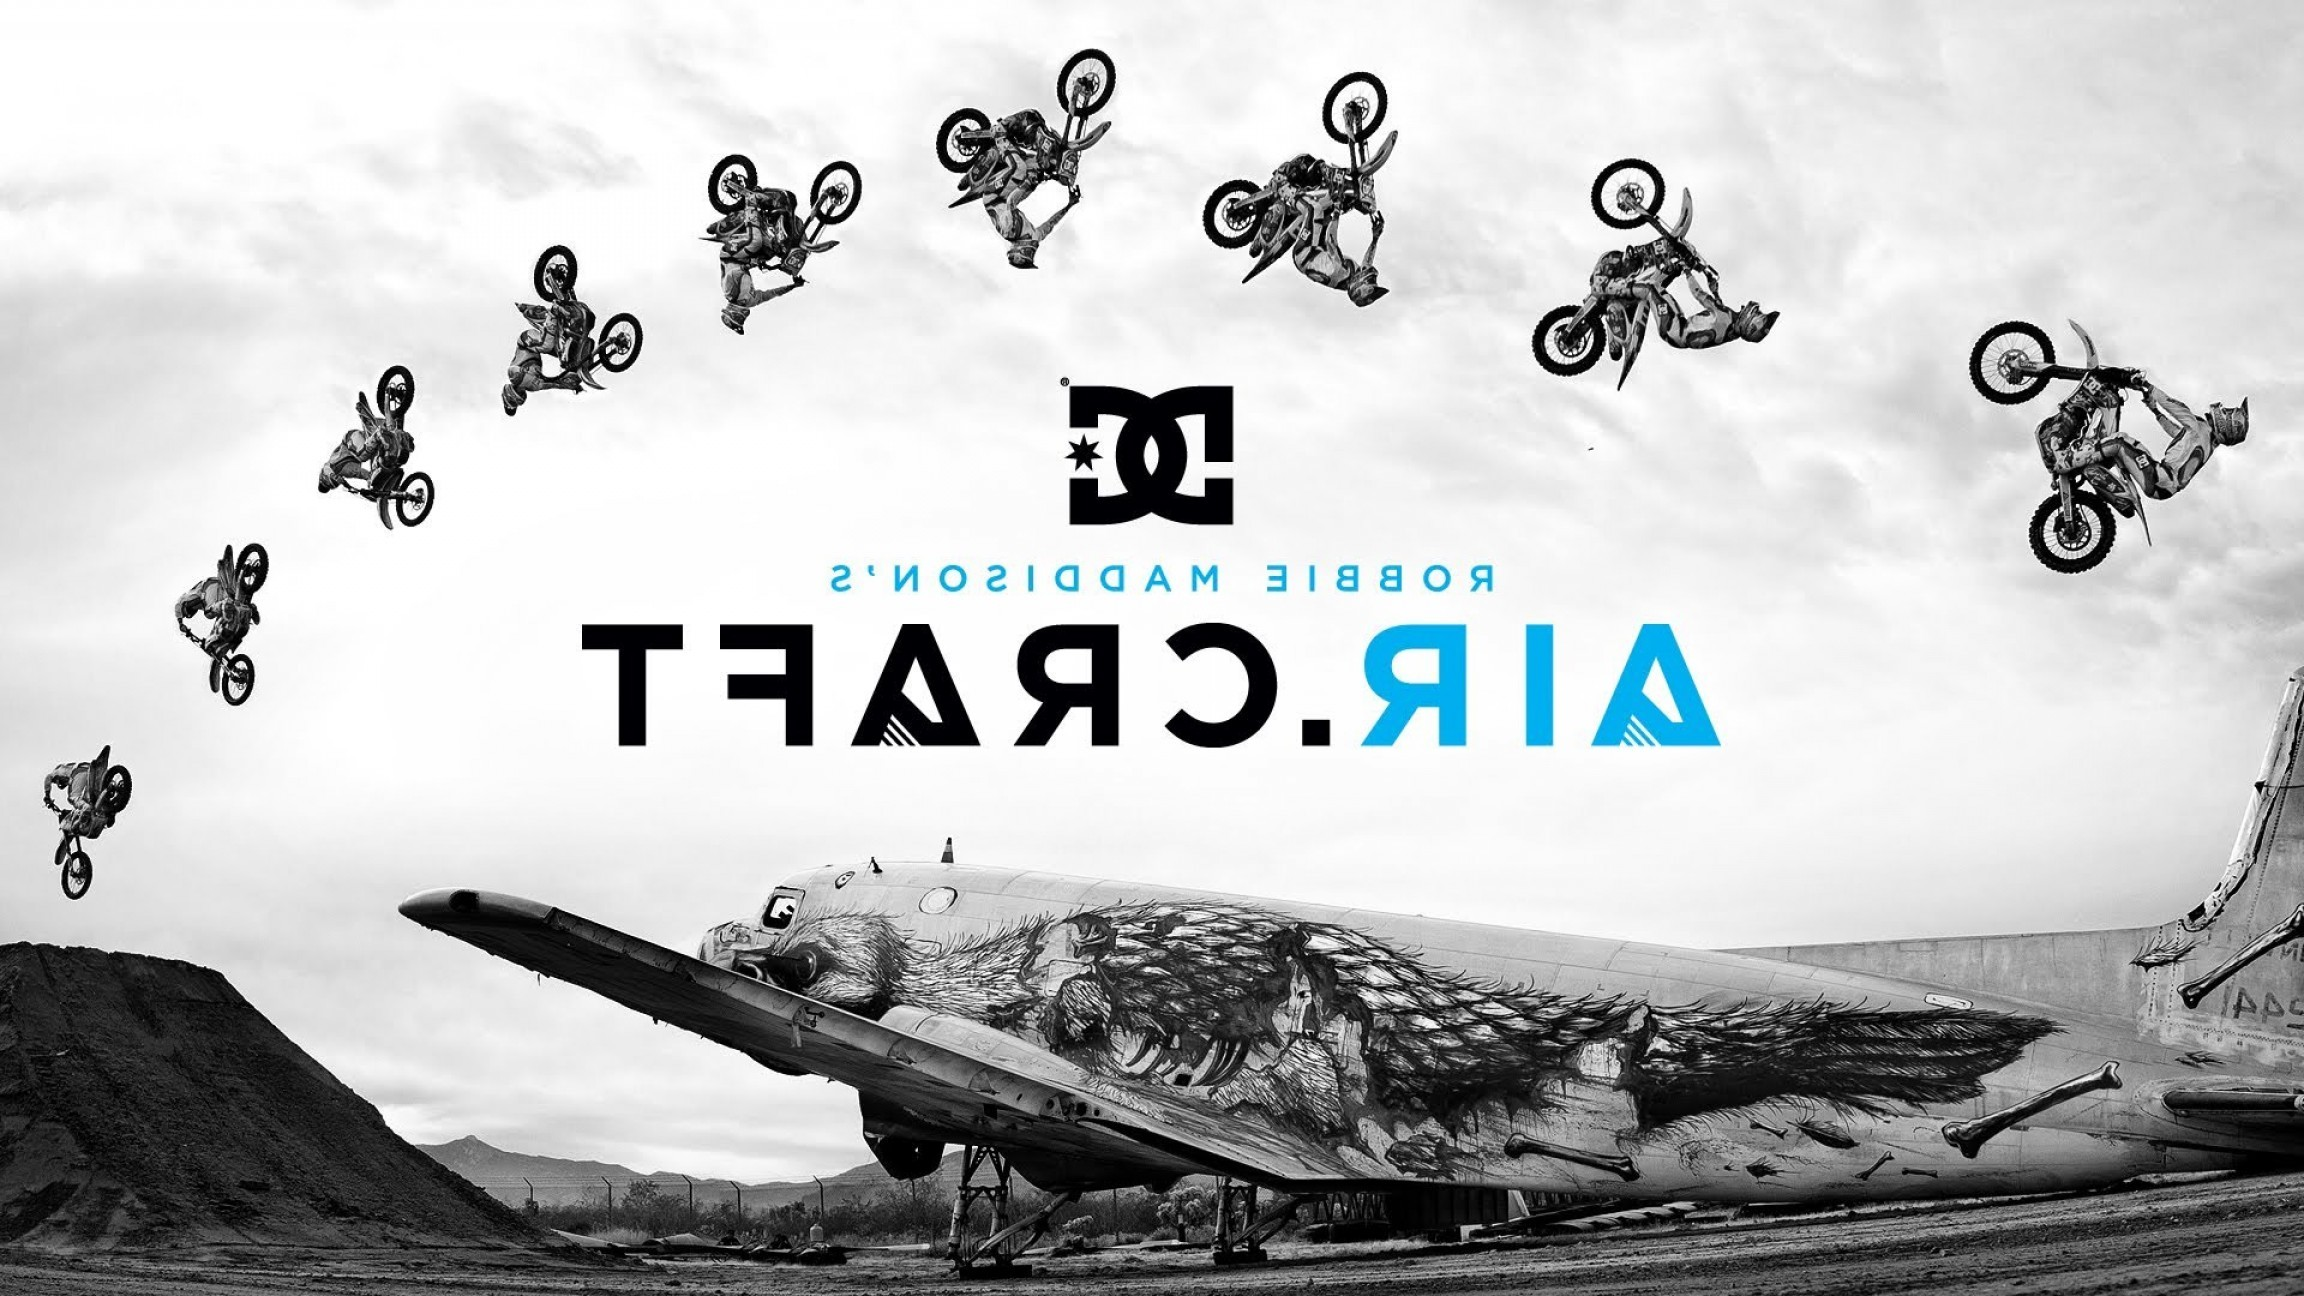 2304x1296 Dc Shoes Background Themes: Exclusive Dc Shoes Logo Wallpapers Download Free